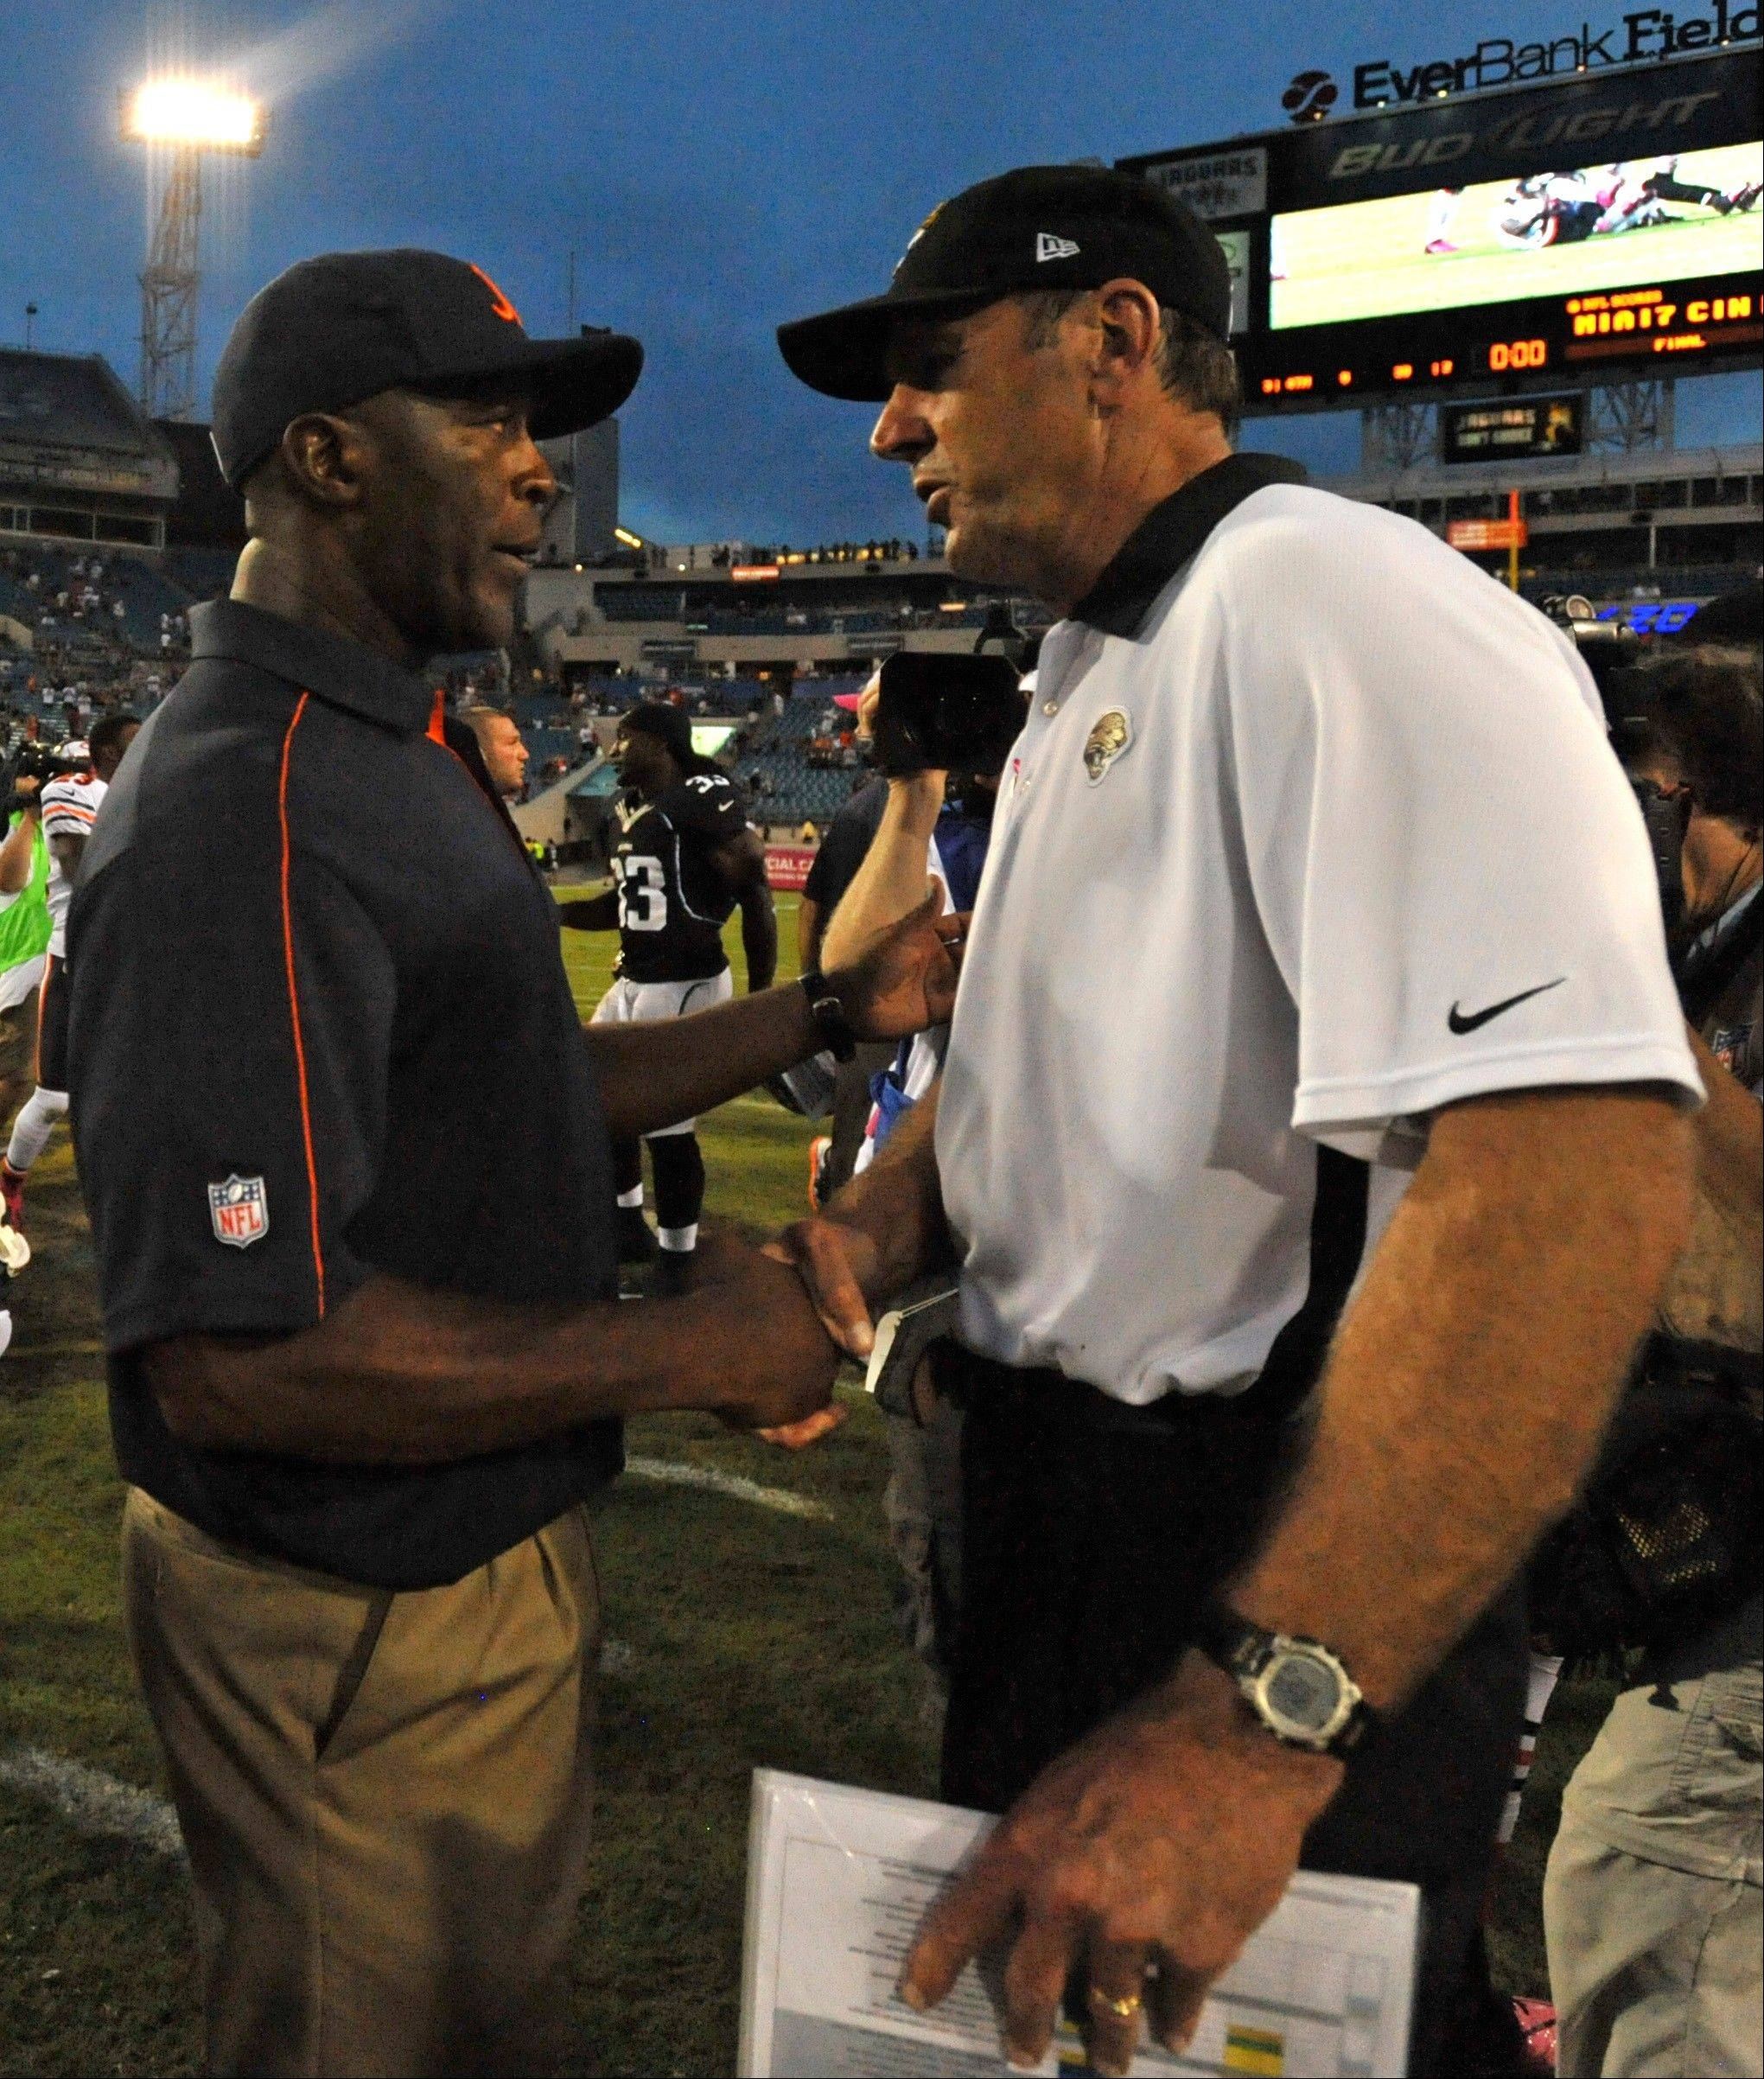 Chicago Bears head coach Lovie Smith, left, and Jacksonville Jaguars head coach Mike Mularkey greet each other after an NFL football game, Sunday, in Jacksonville, Fla. Chicago Bears beat the Jacksonville Jaguars 41-3.